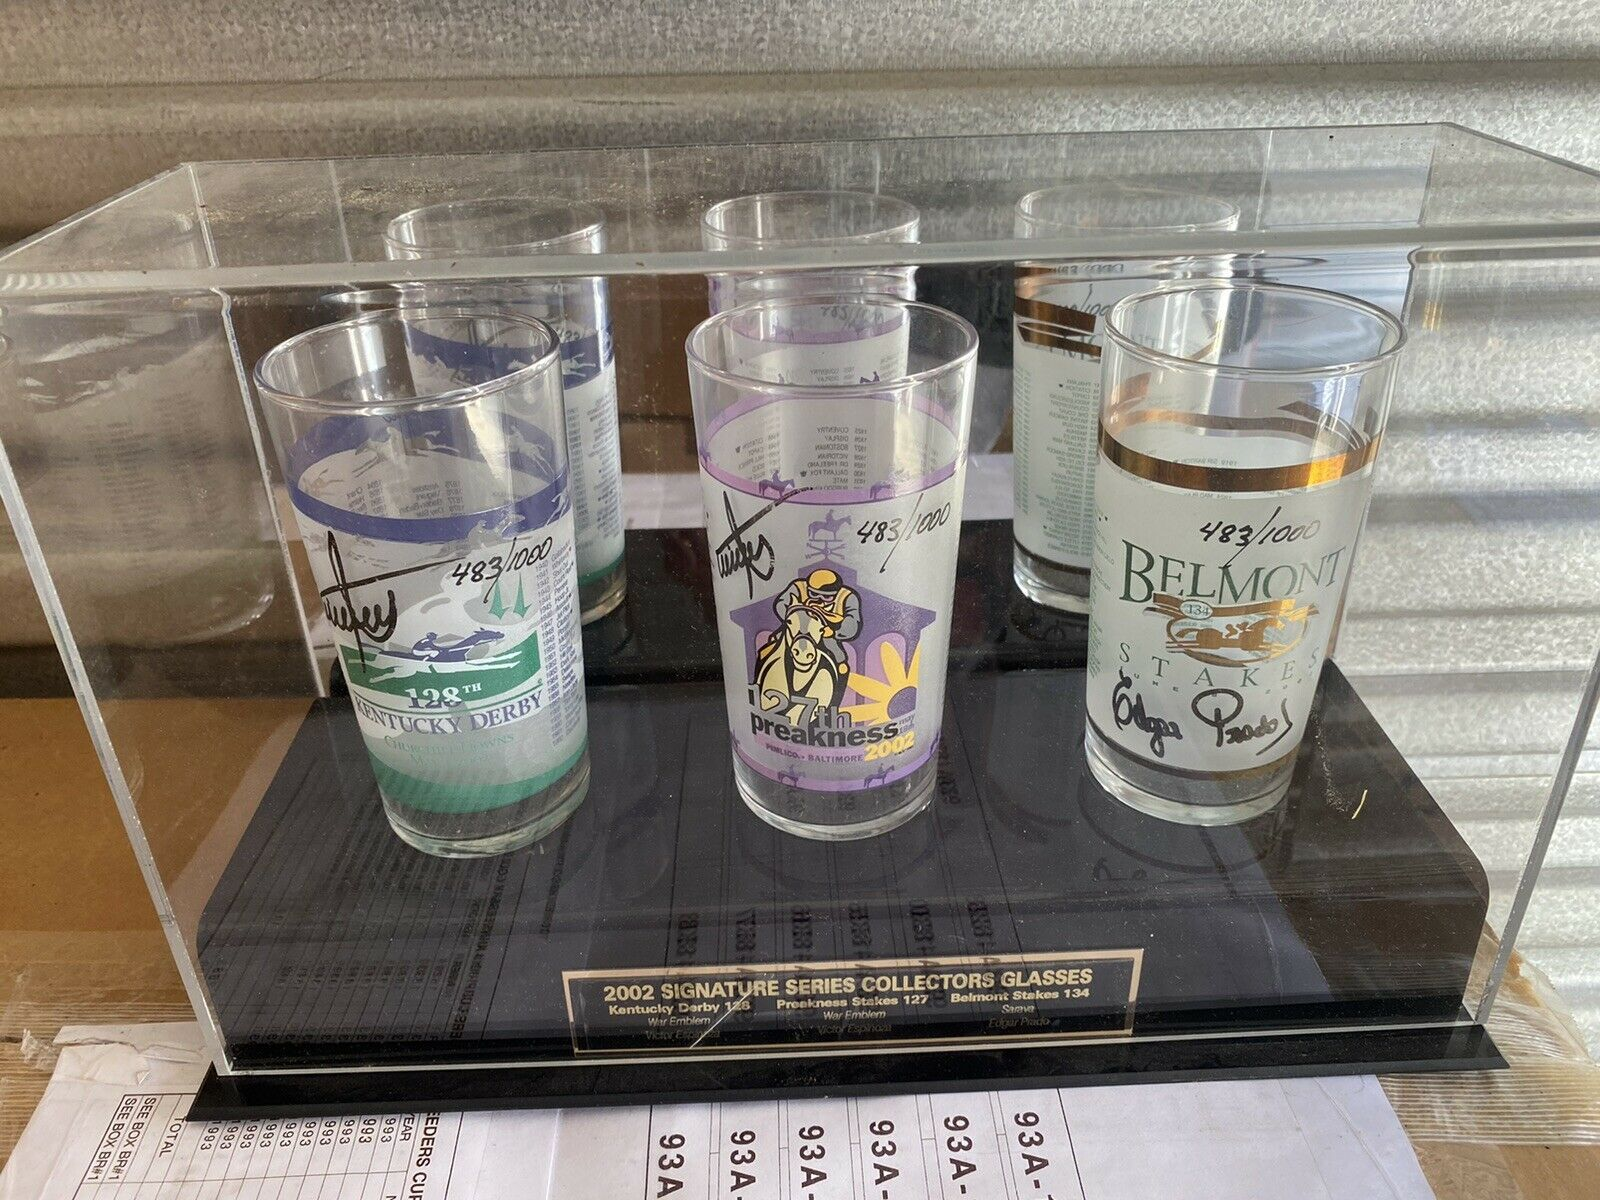 Primary image for 2002. Signature Series Collectors Glasses Kentucky Derby  Preakness Belmont MINT